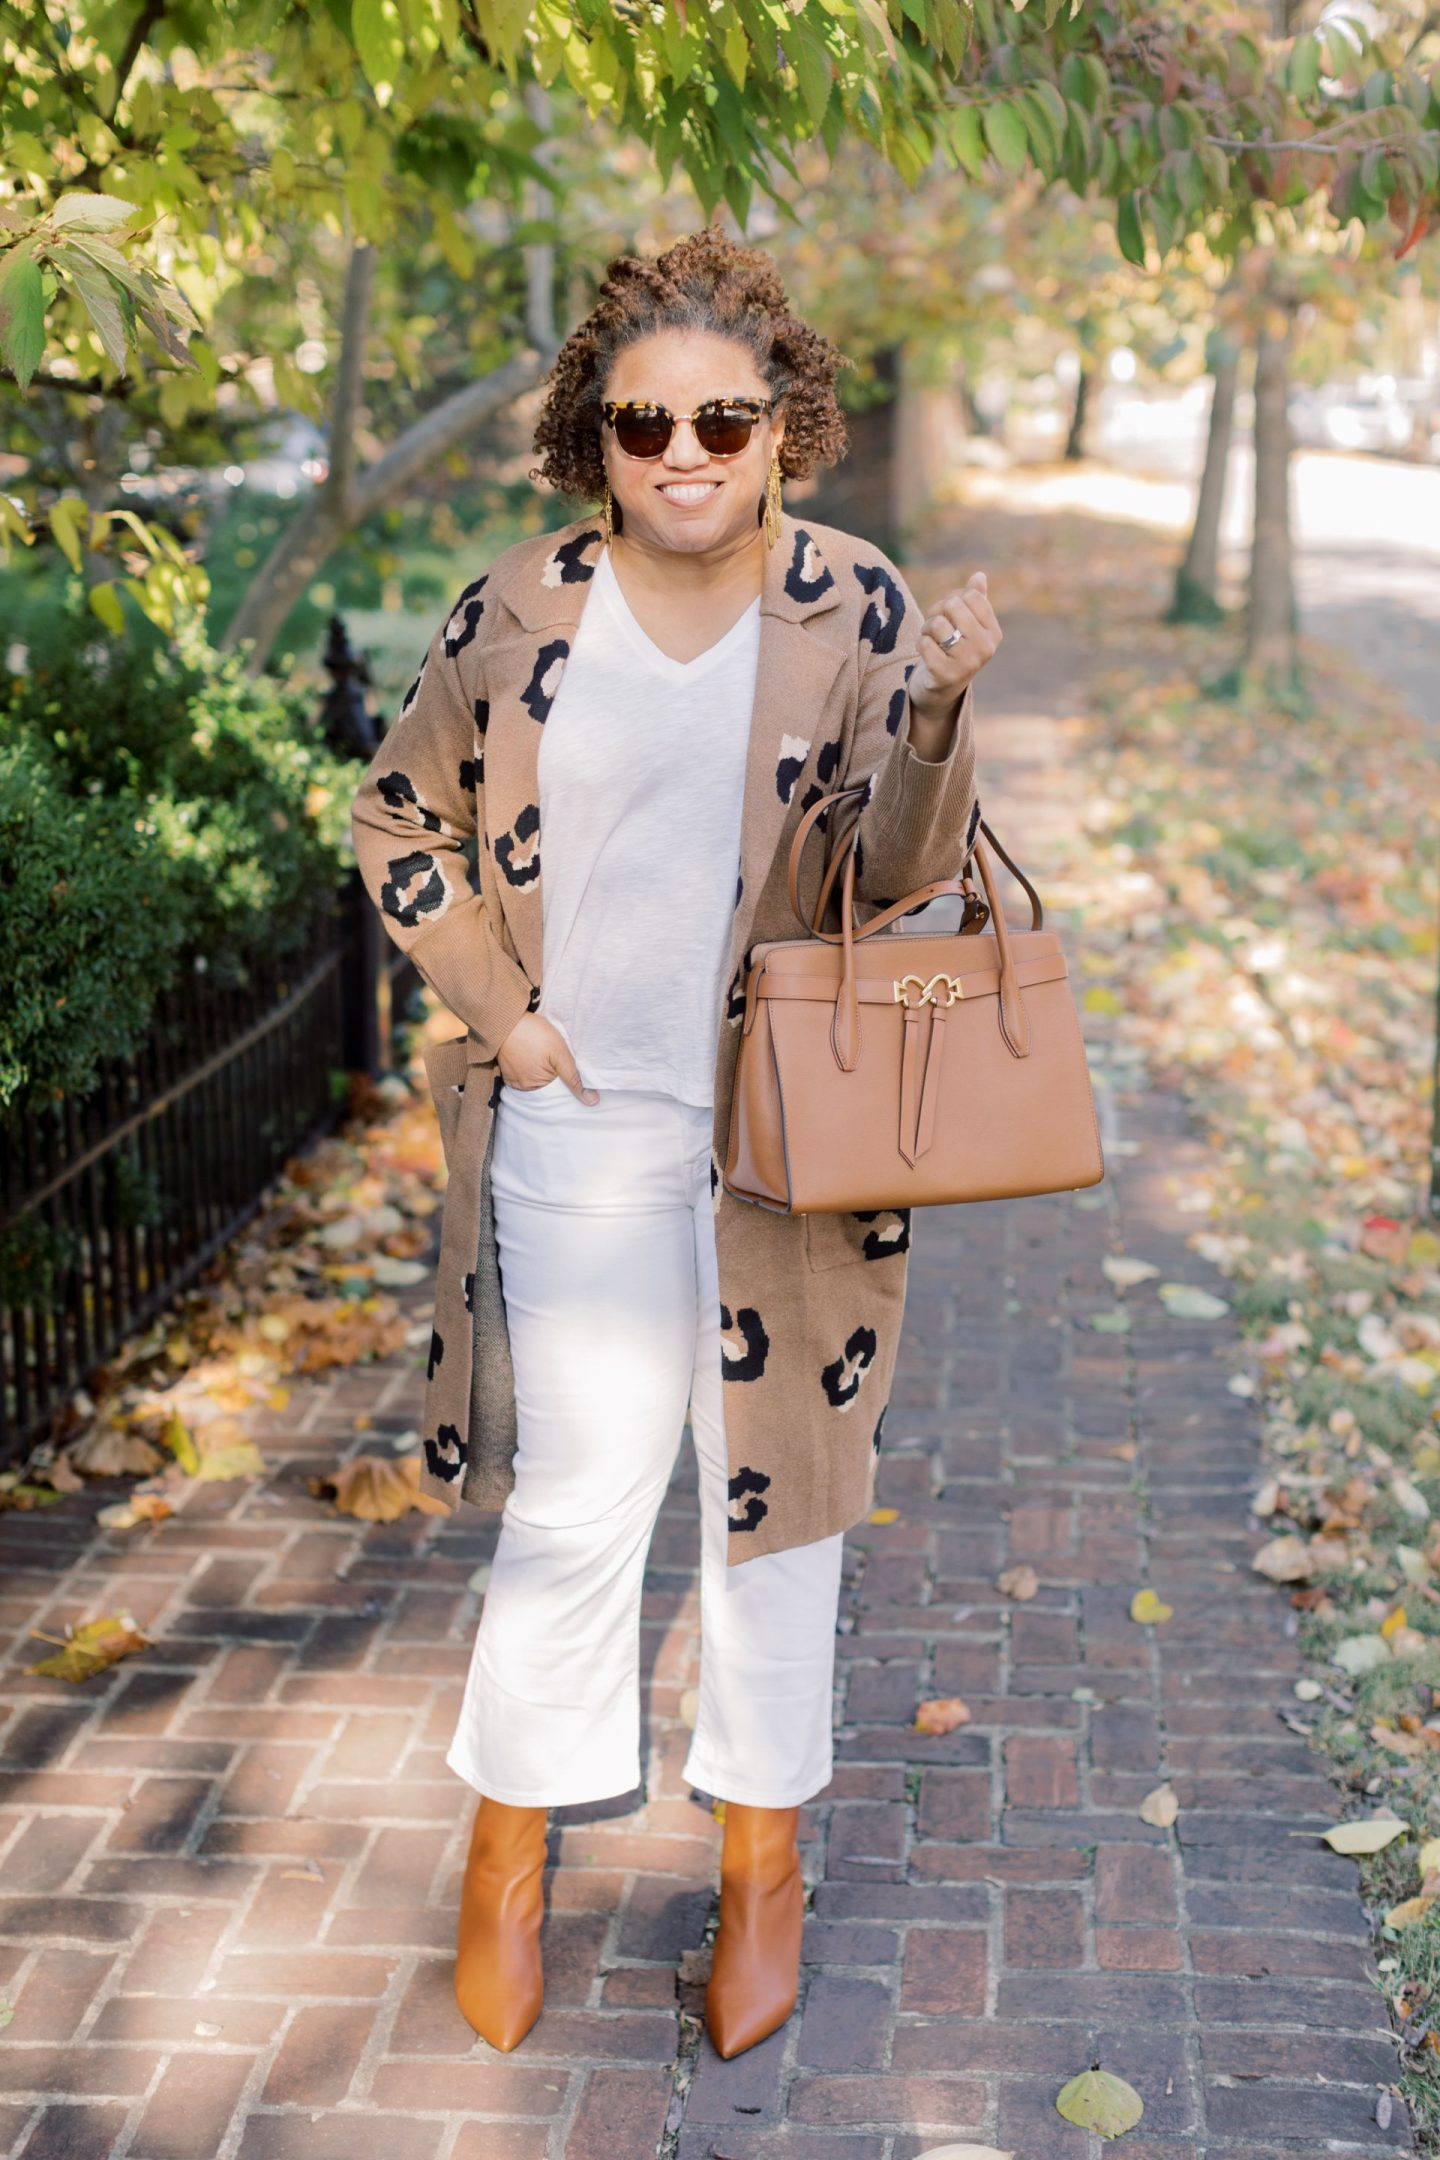 Fall Sweaters by popular Kentucky fashion blog, Really Rynetta: image of a woman wearing a J. Crew Ella open-front long sweater-blazer in leopard, Madewell Cali Demi-Boot Jeans in Pure White, Kendra Scott Holland Statement Earrings In Vintage Gold, J. Crew Pointed-toe Sadie boots in leather, and holding a Kate Spade bag.